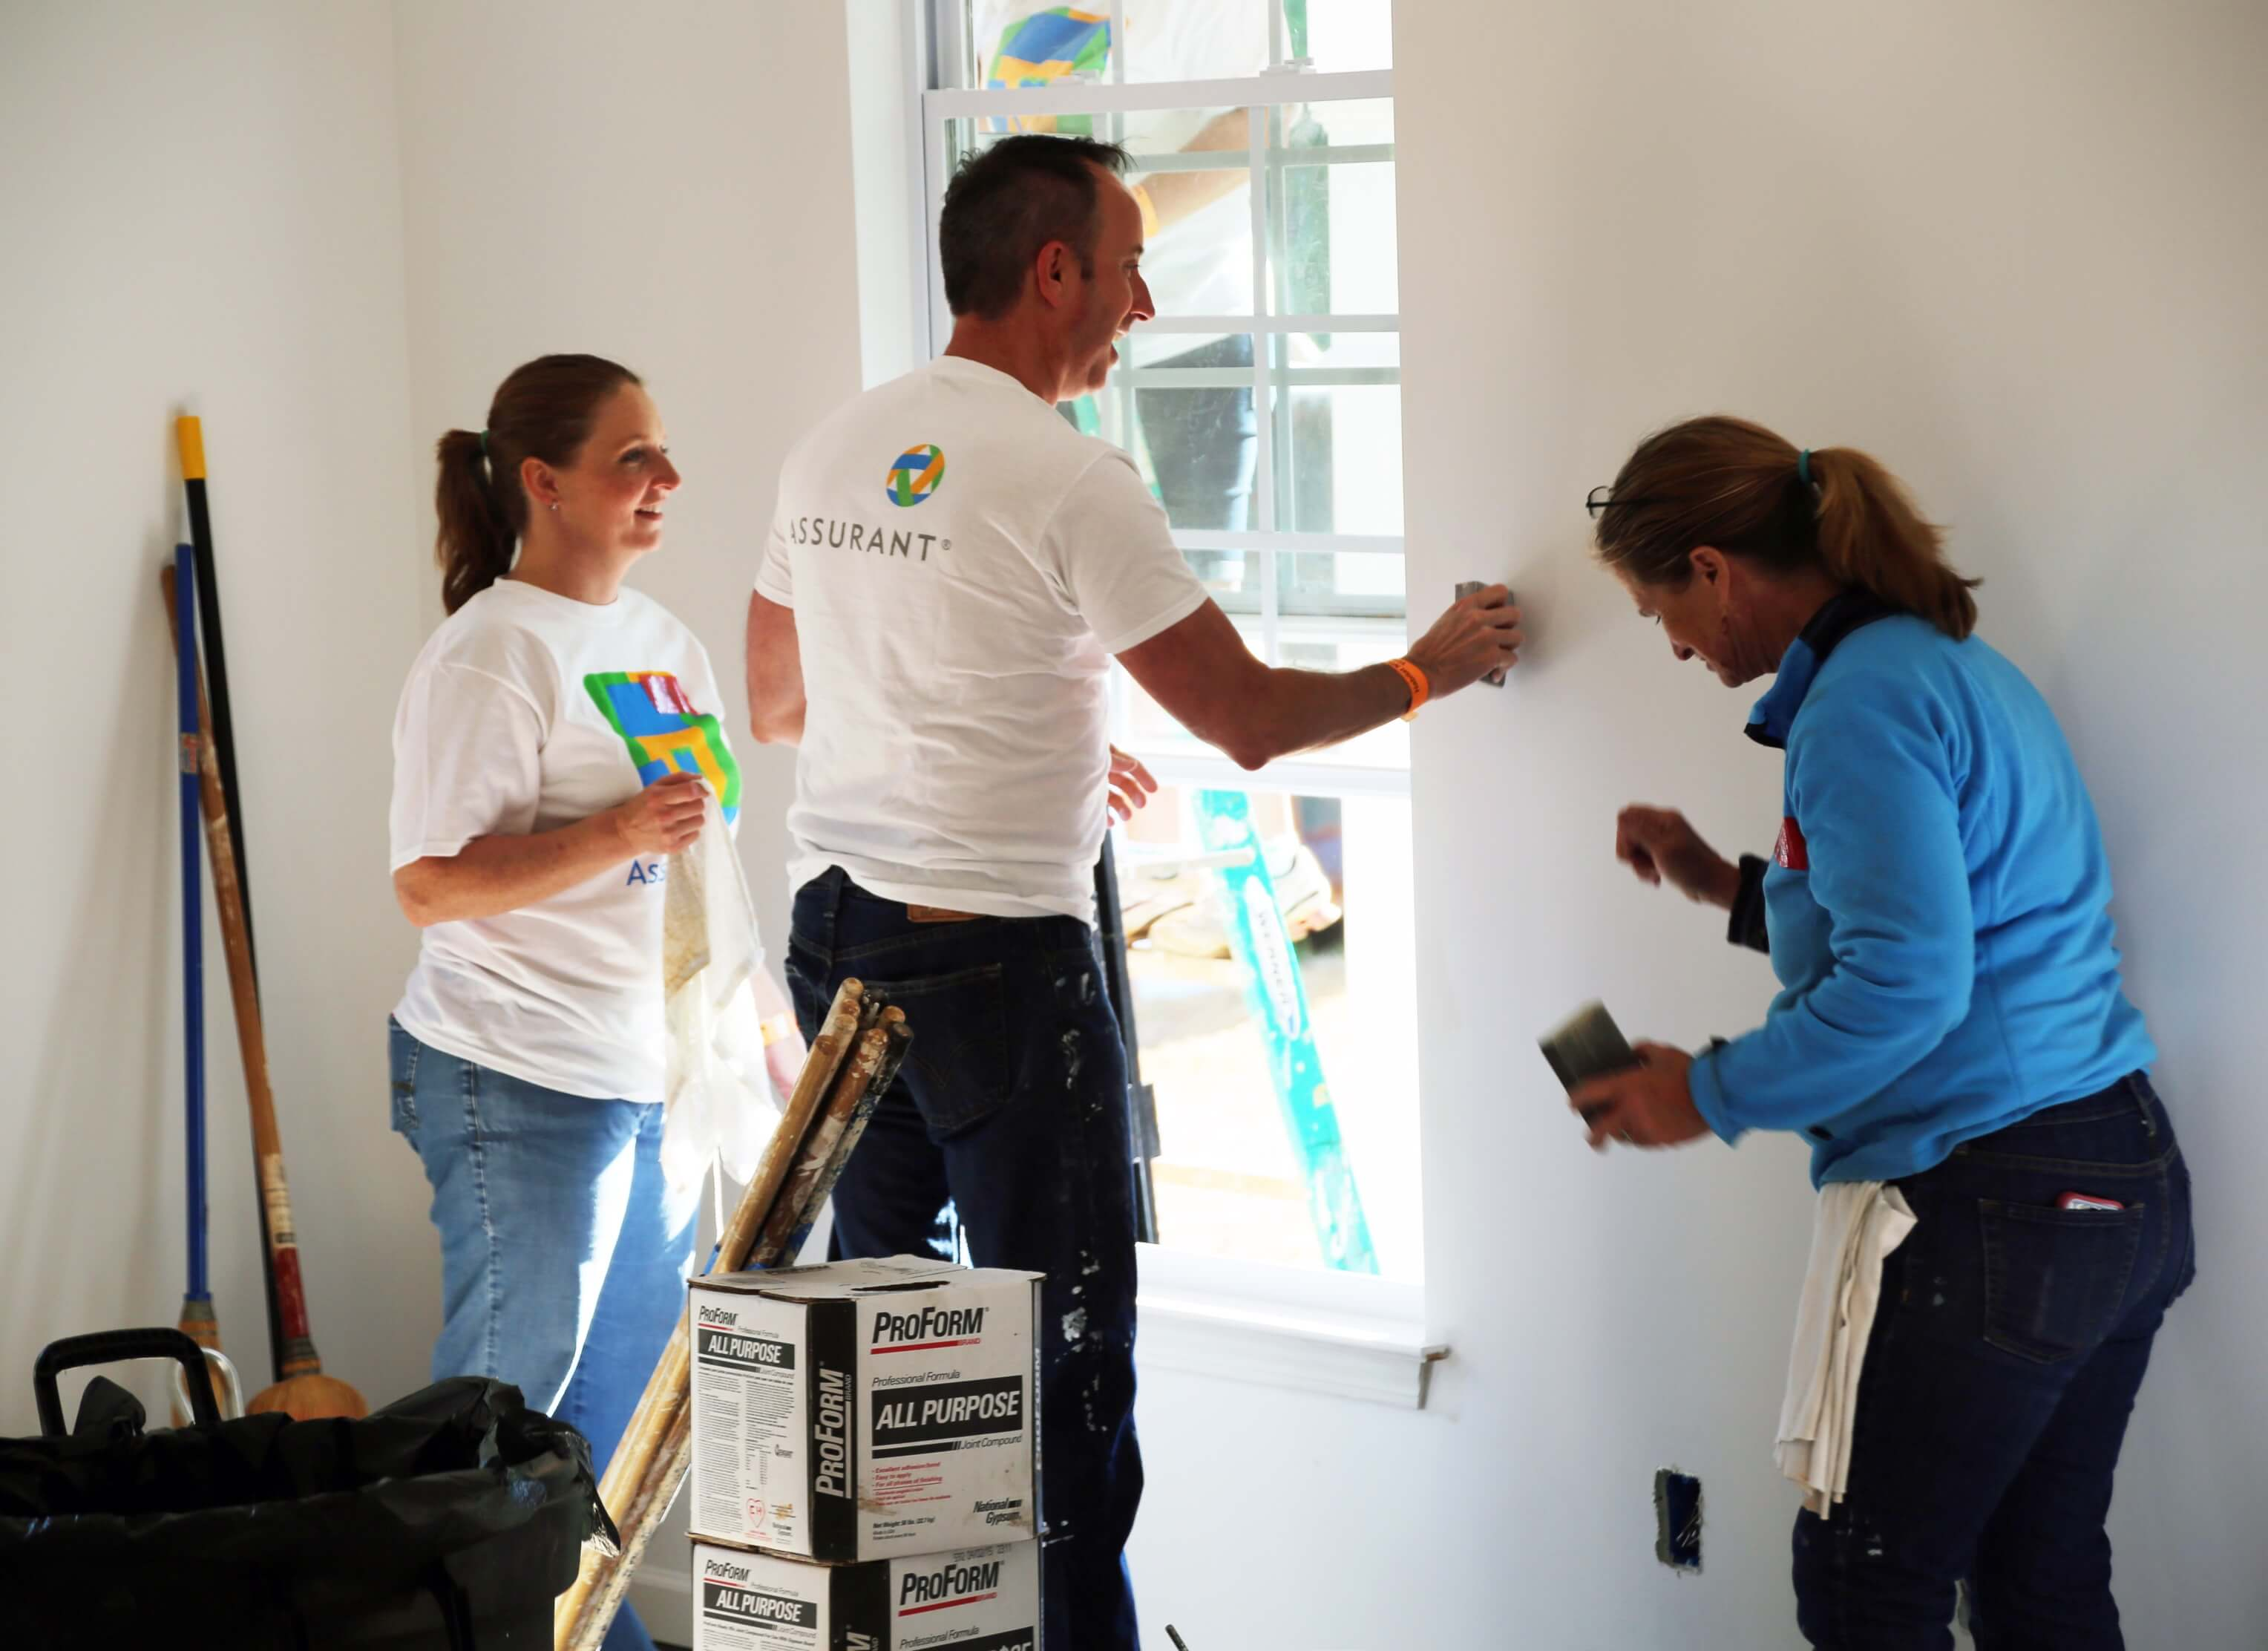 Three Assurant employees working at a Habitat for Humanity build sanding walls